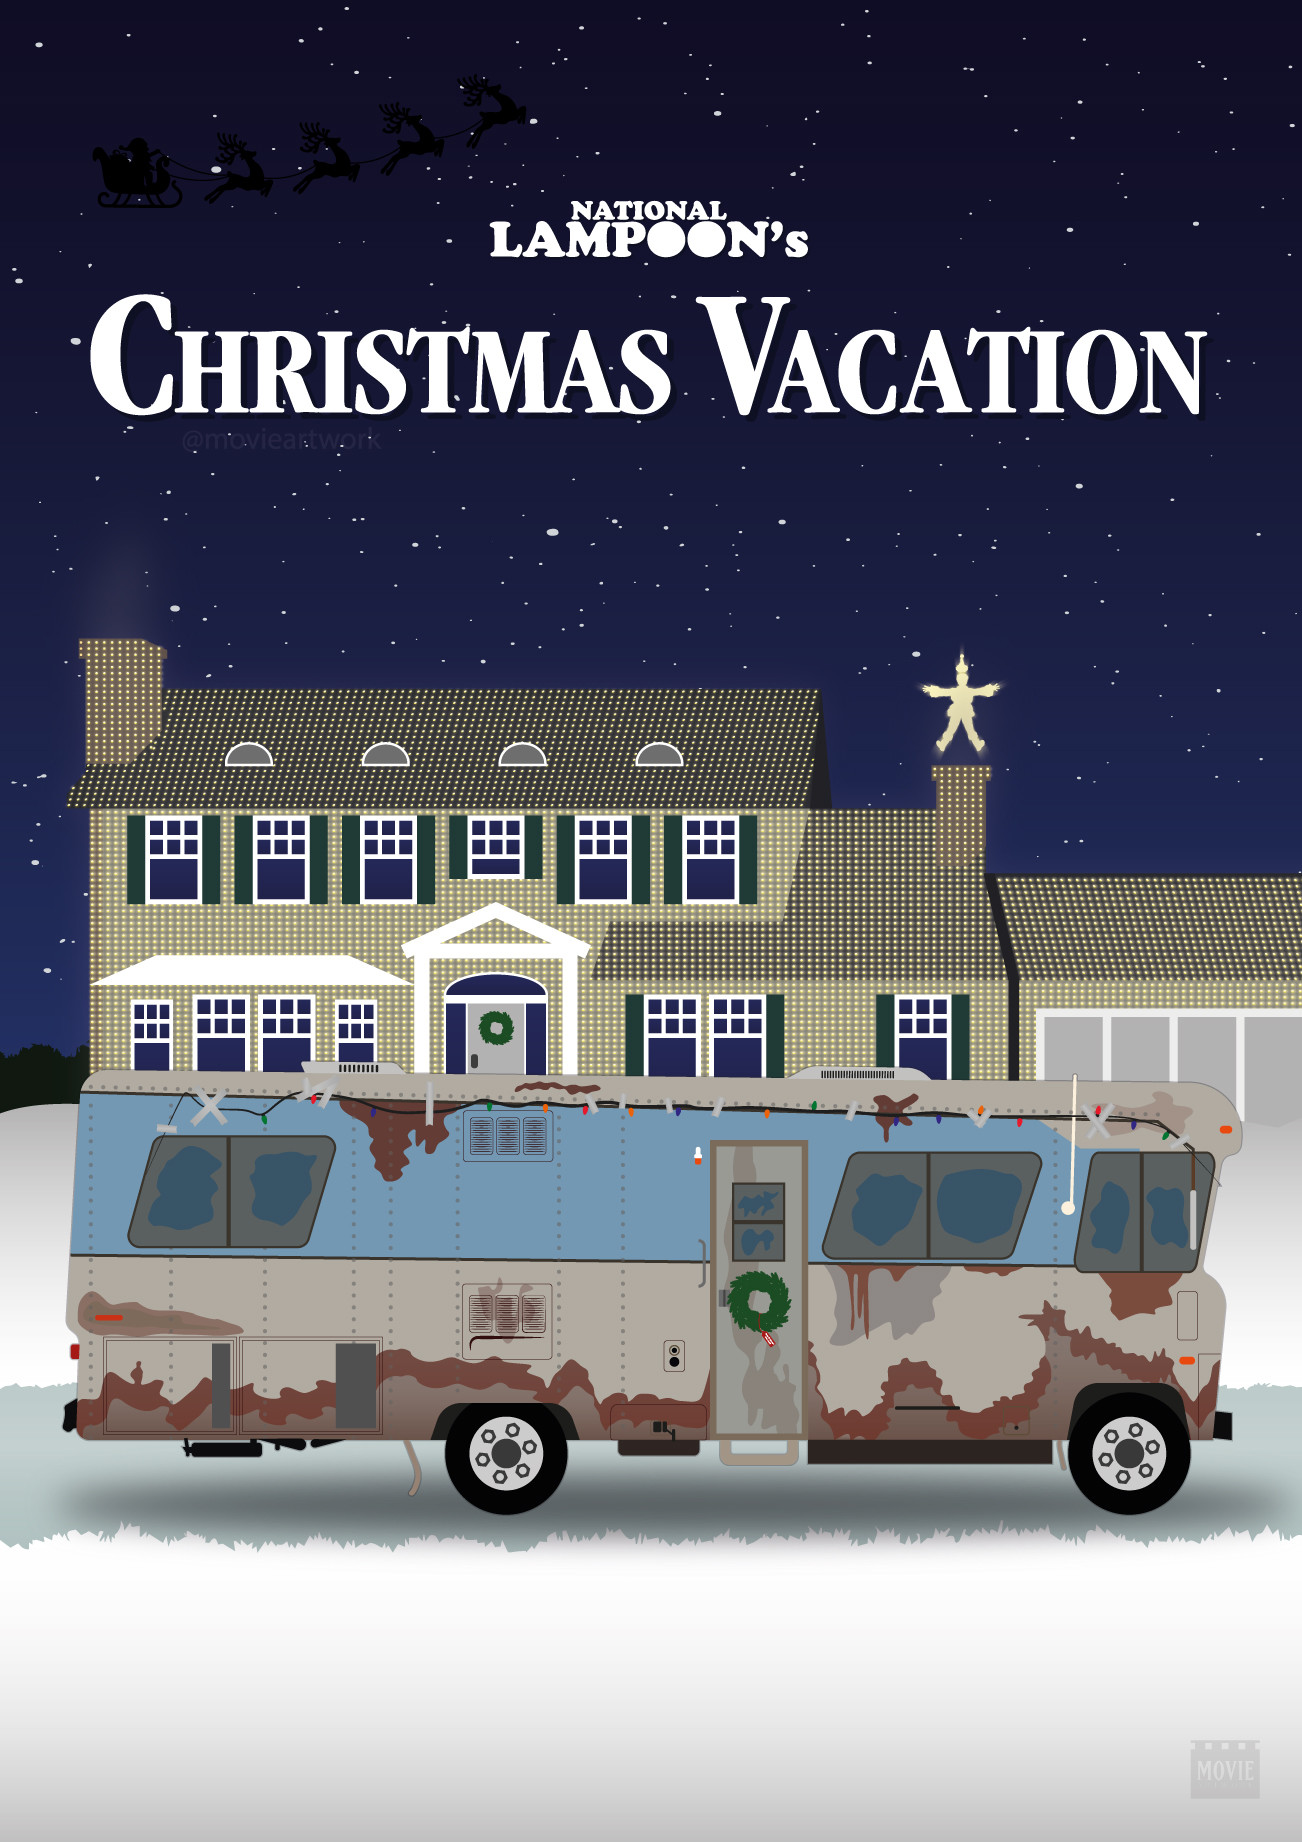 Christmas Vacation Rv.Artstation Christmas Vacation Rv And House Movie Artwork